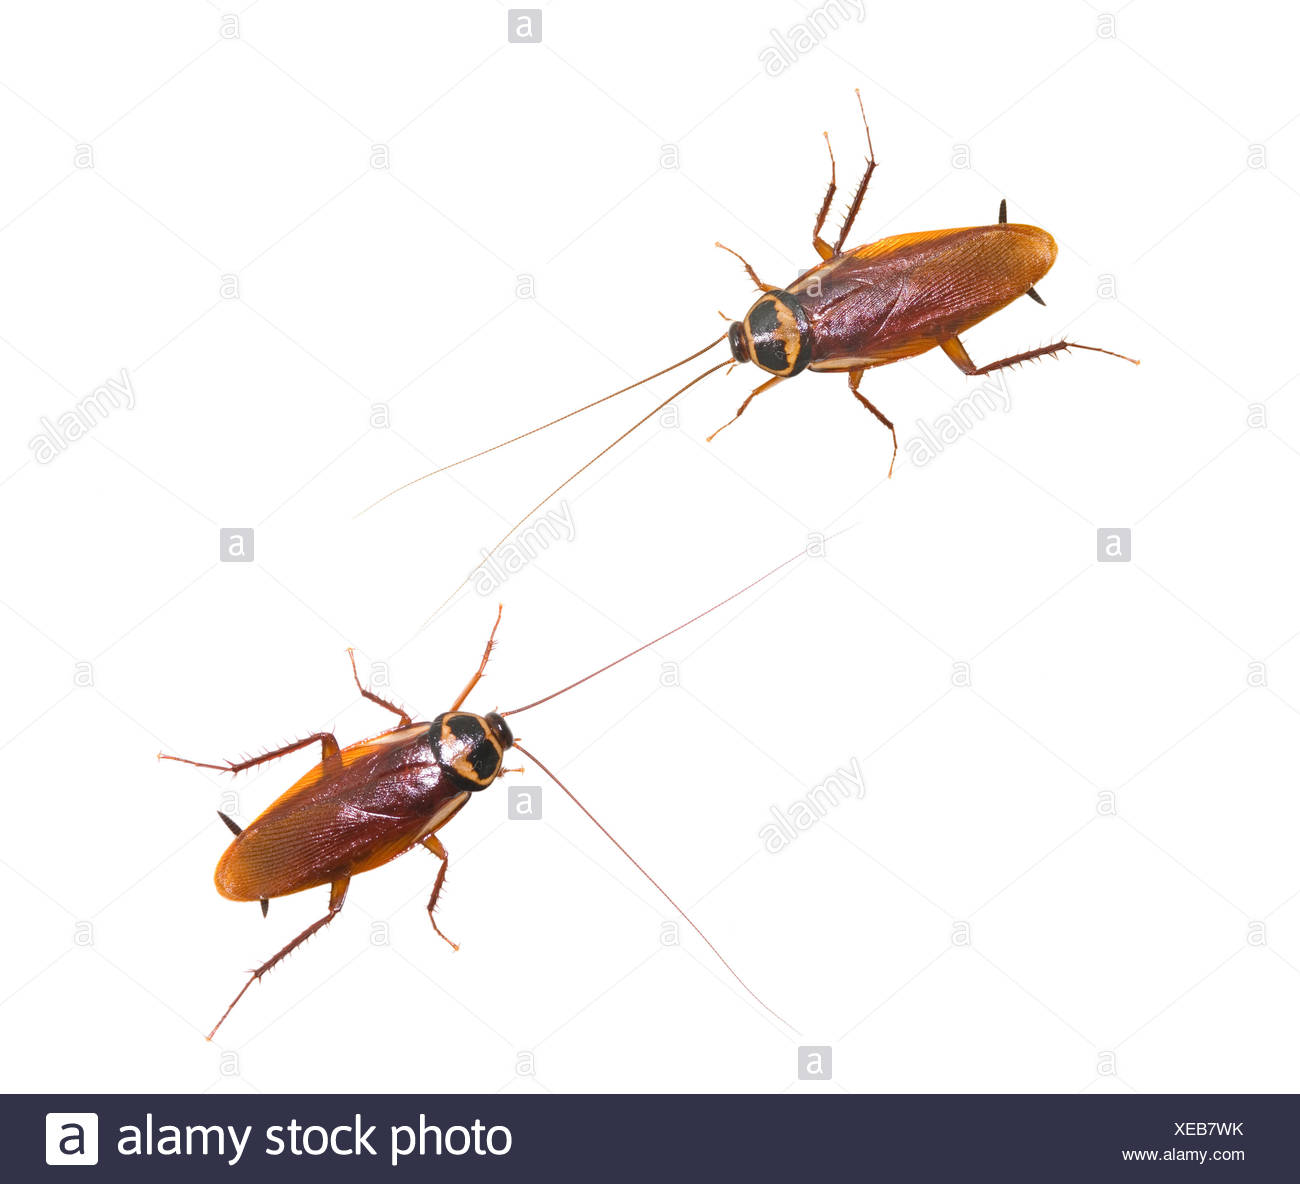 Cockroach Kitchen Stock Photos & Cockroach Kitchen Stock Images - Alamy